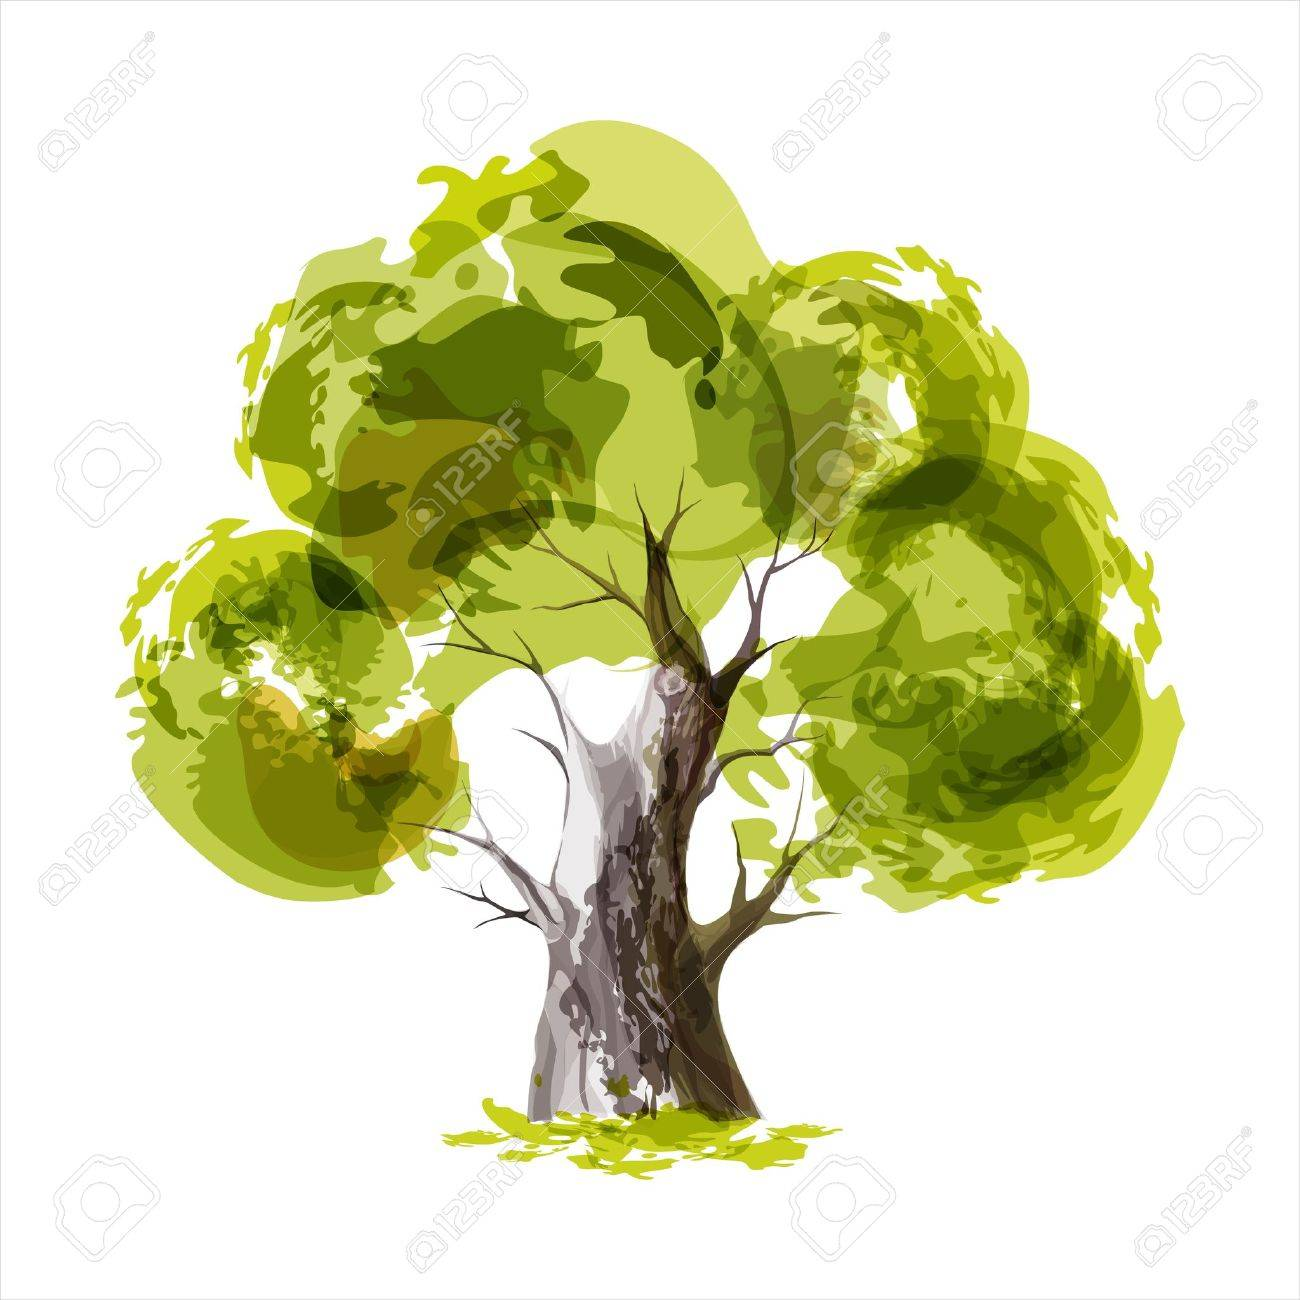 Abstract illustration of stylized green tree Stock Vector - 17226272